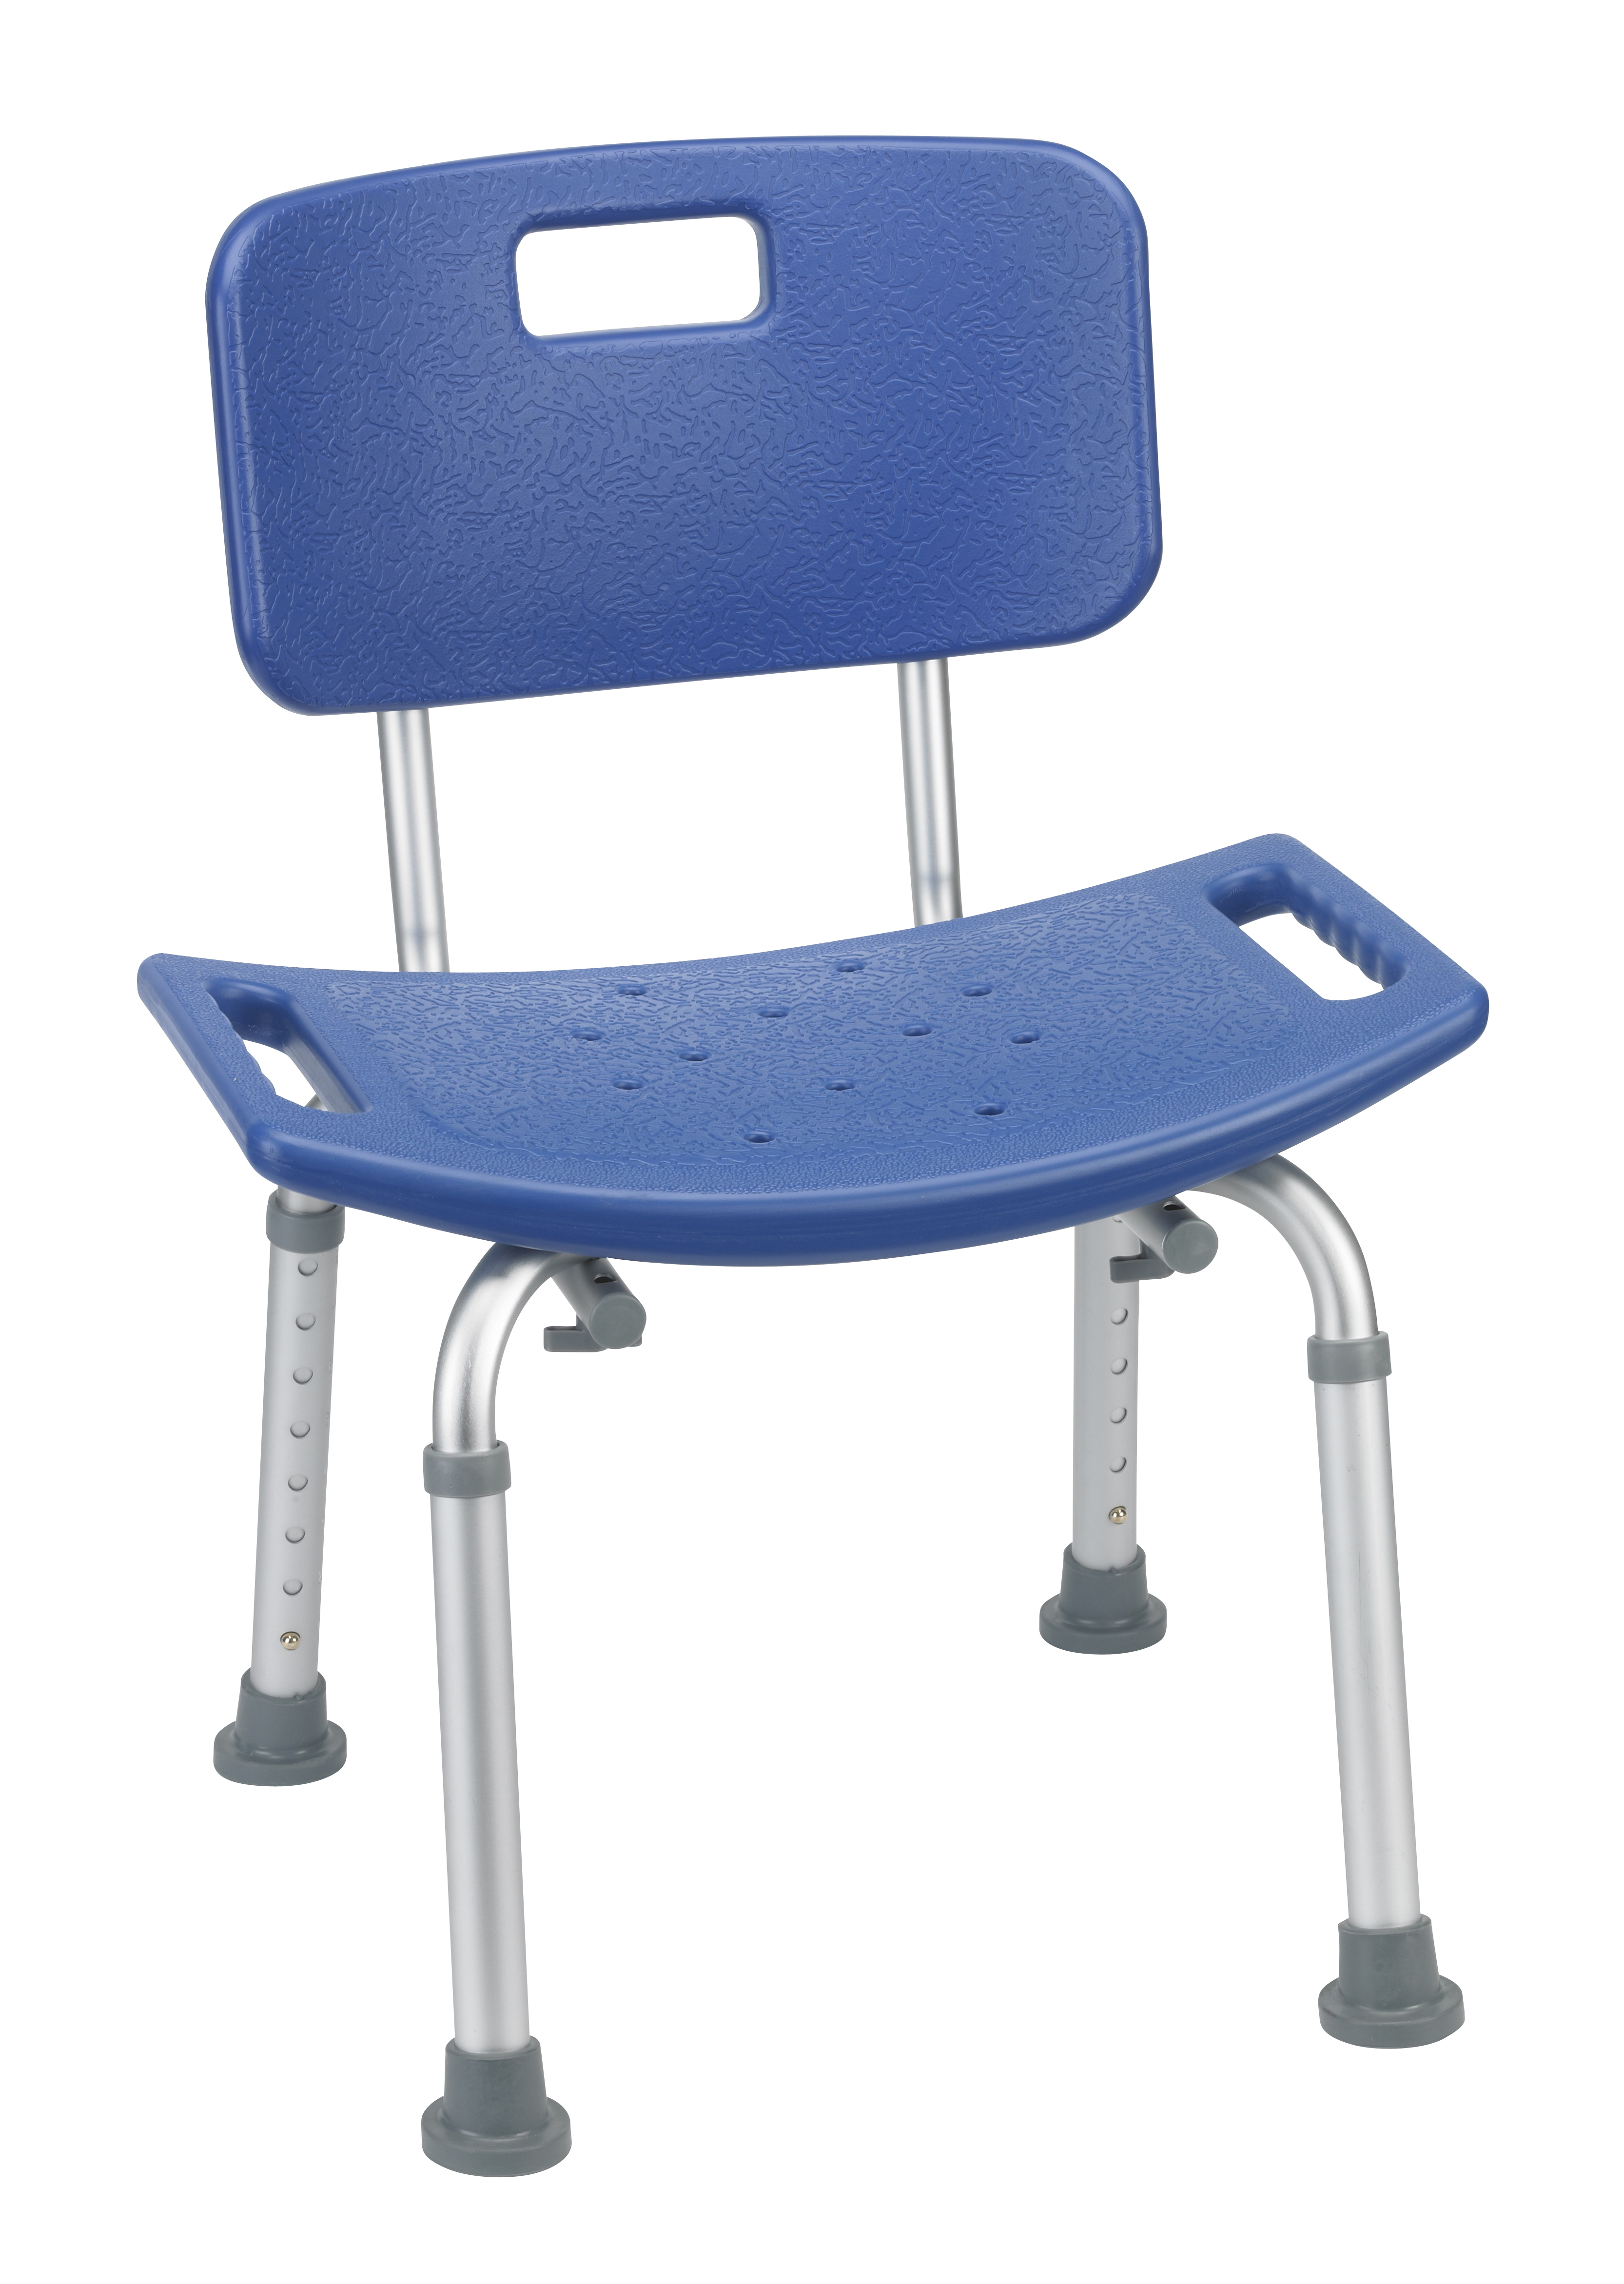 Bathroom Safety Shower Tub Bench Chair with Back @MedicalGrace.com